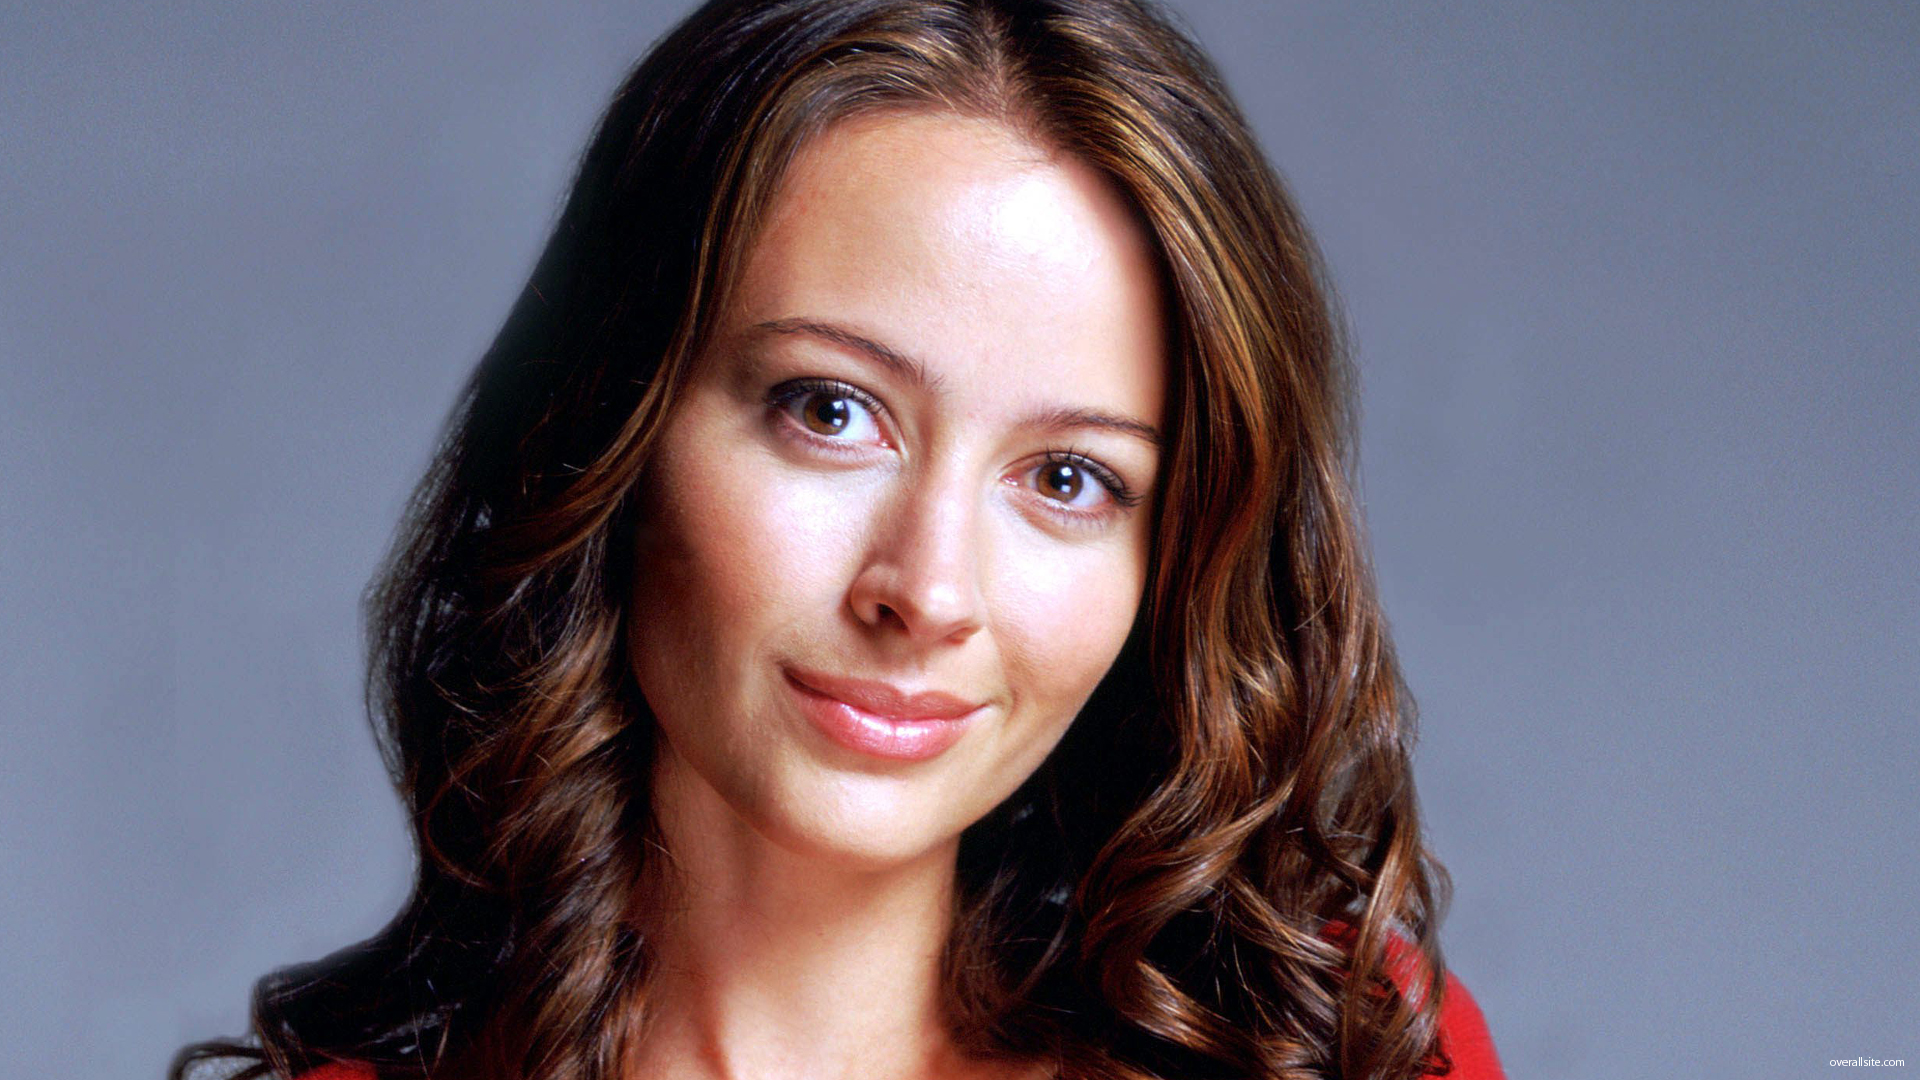 Download this Amy Acker Smile picture